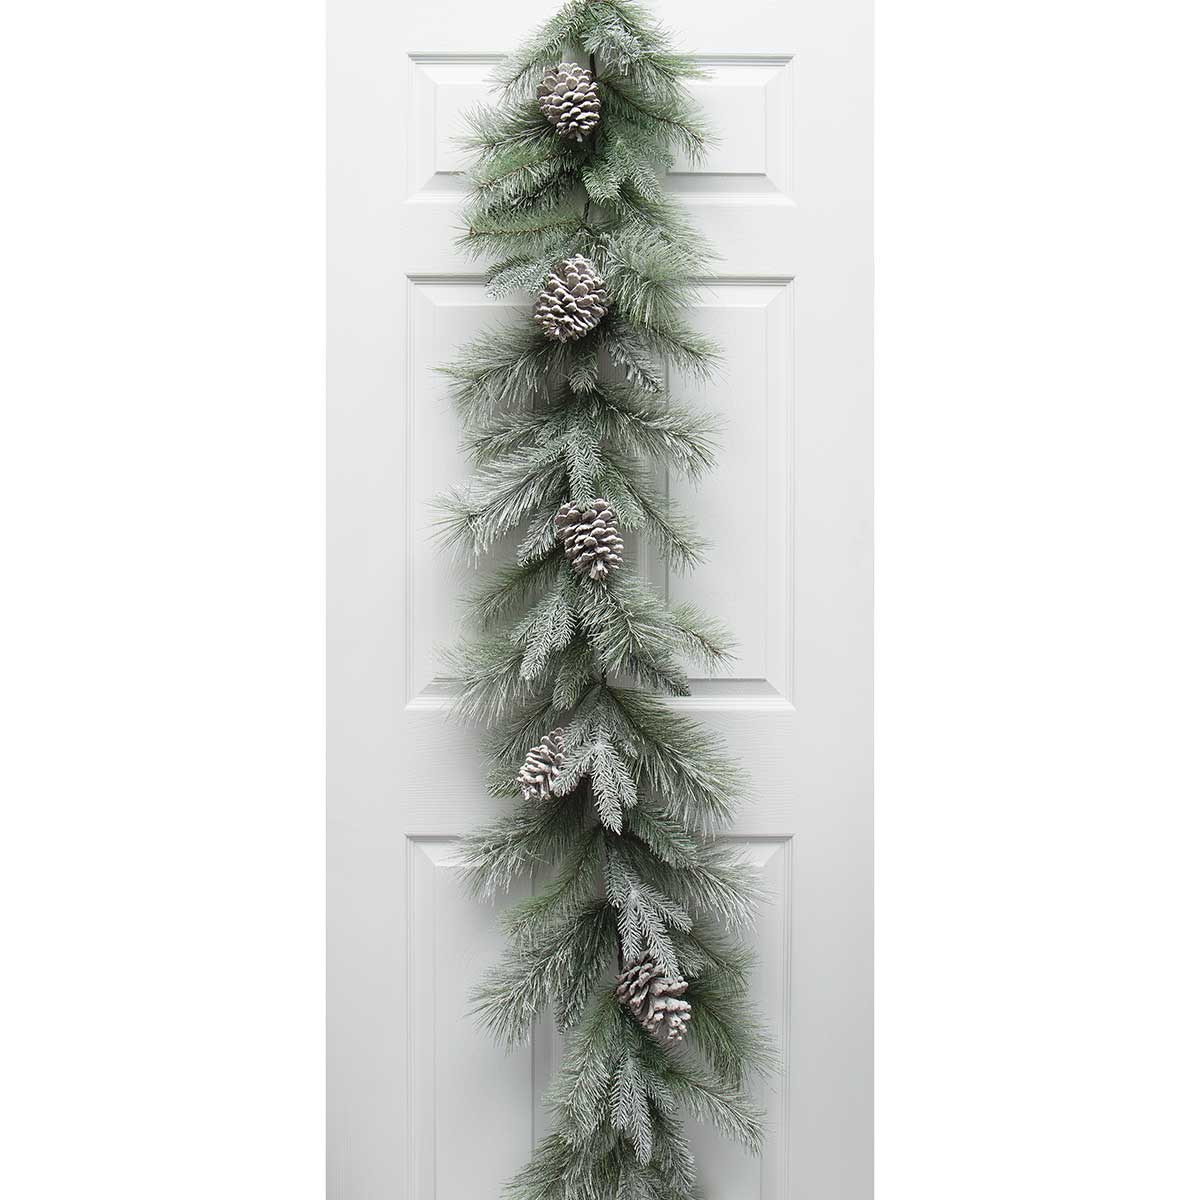 MAJESTIC FROSTED PINE GARLAND GREEN WITH PINECONES AND